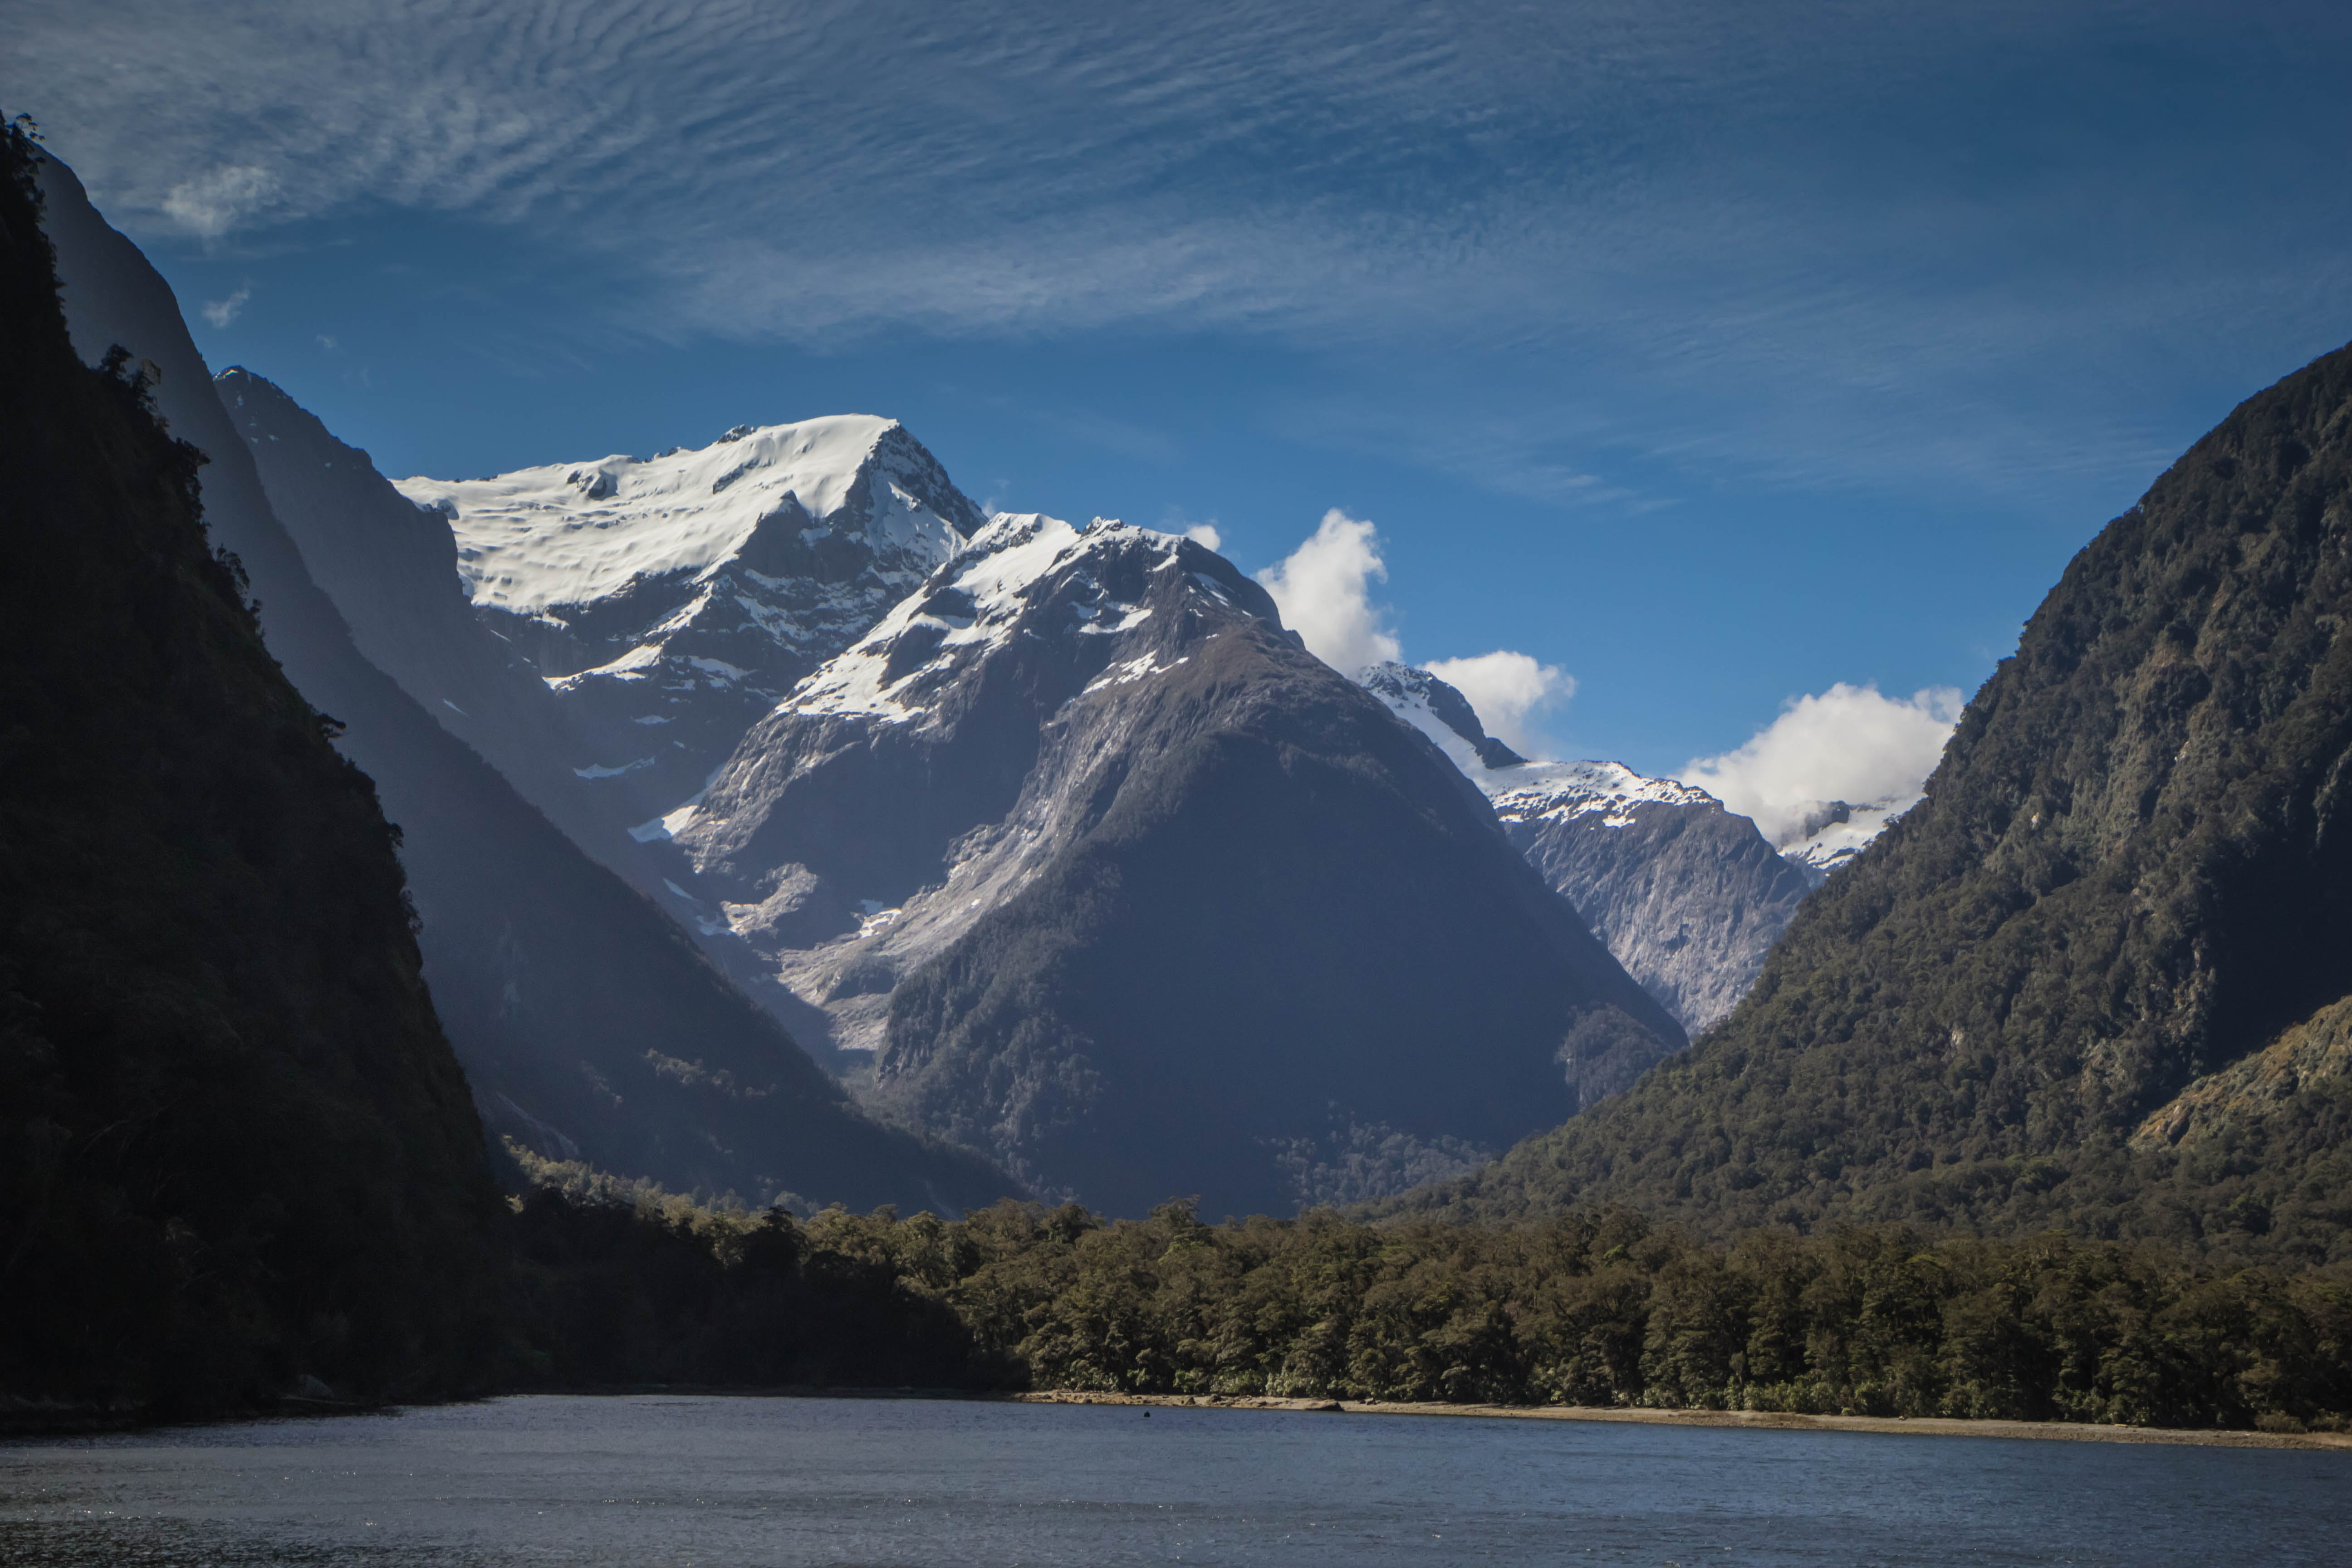 Free stock photo of mountains, new zealand, snow capped mountains, milford sound